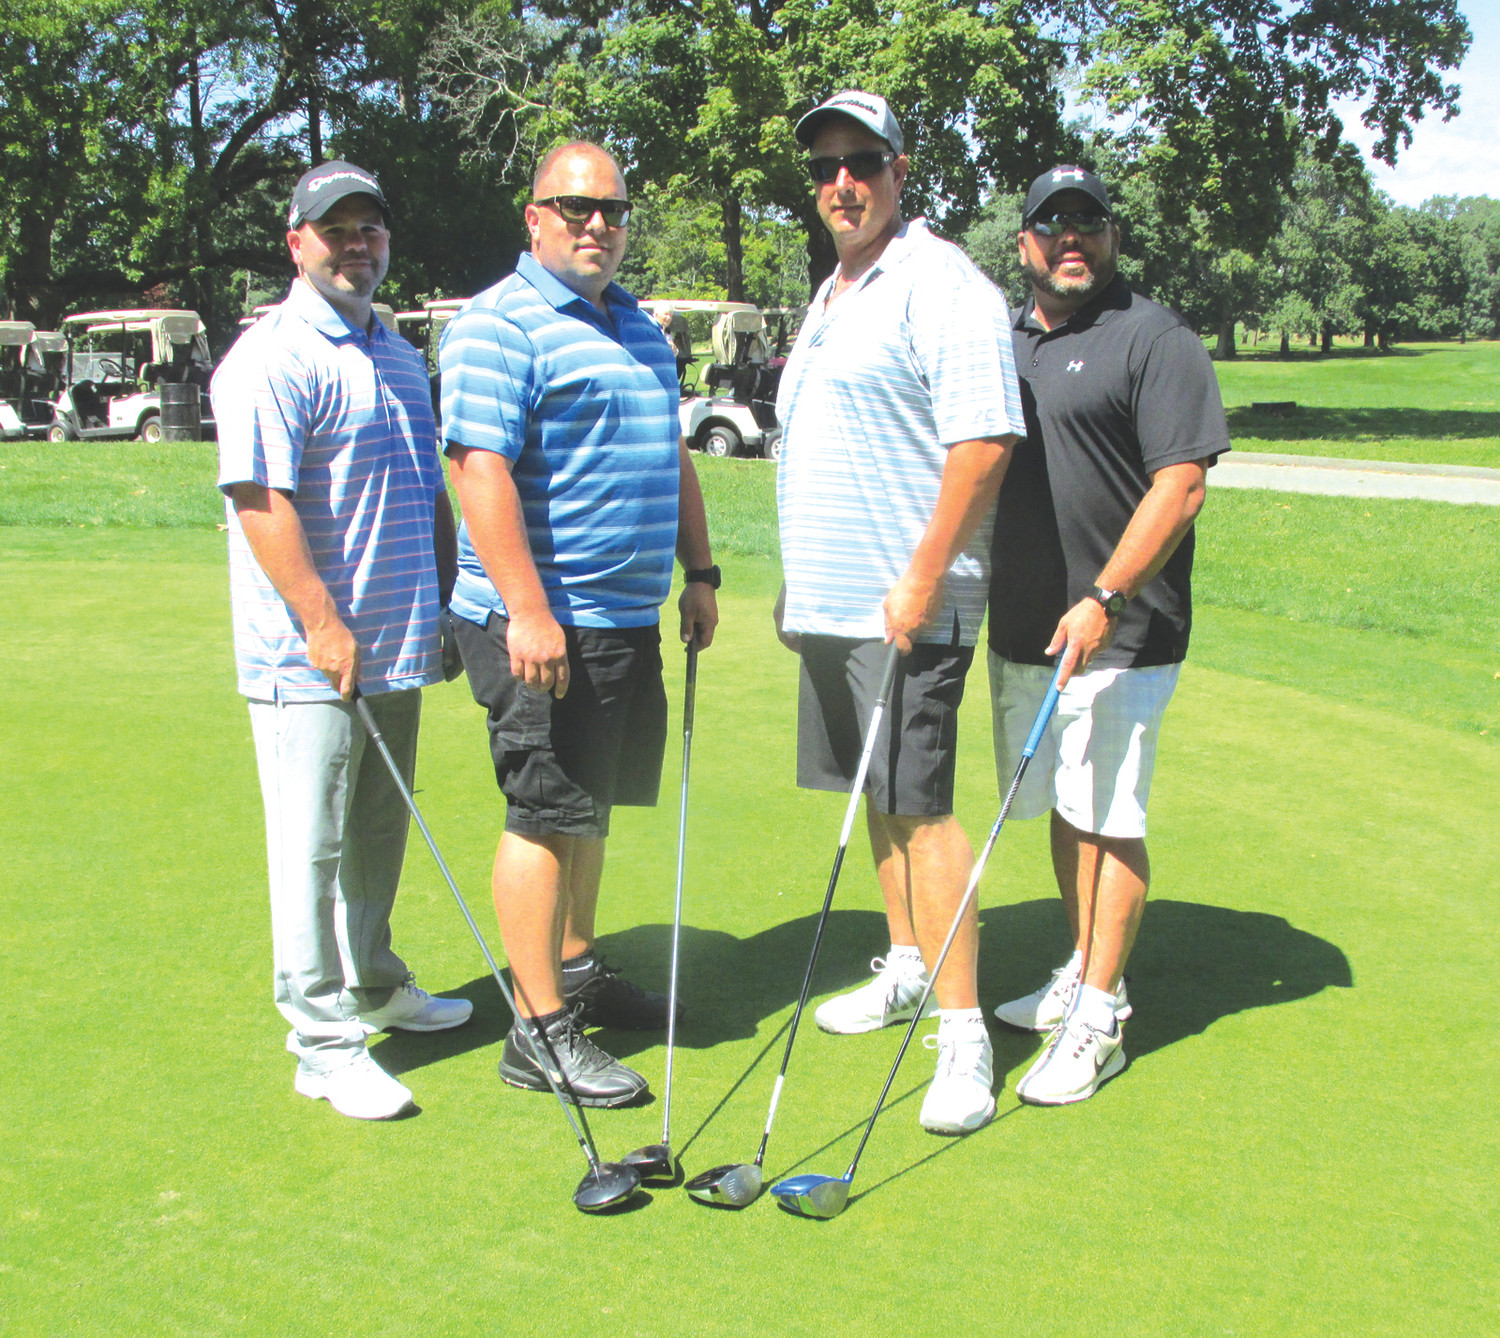 AWESOME ALUMS: Among those JHS alums that turned out for Sunday's Panther Gridiron Club Golf Tourney are, from left: Joe Desmarias, '00; Matt Volpi, Jim Picchi, '91; and Ray Desmarais, '91.